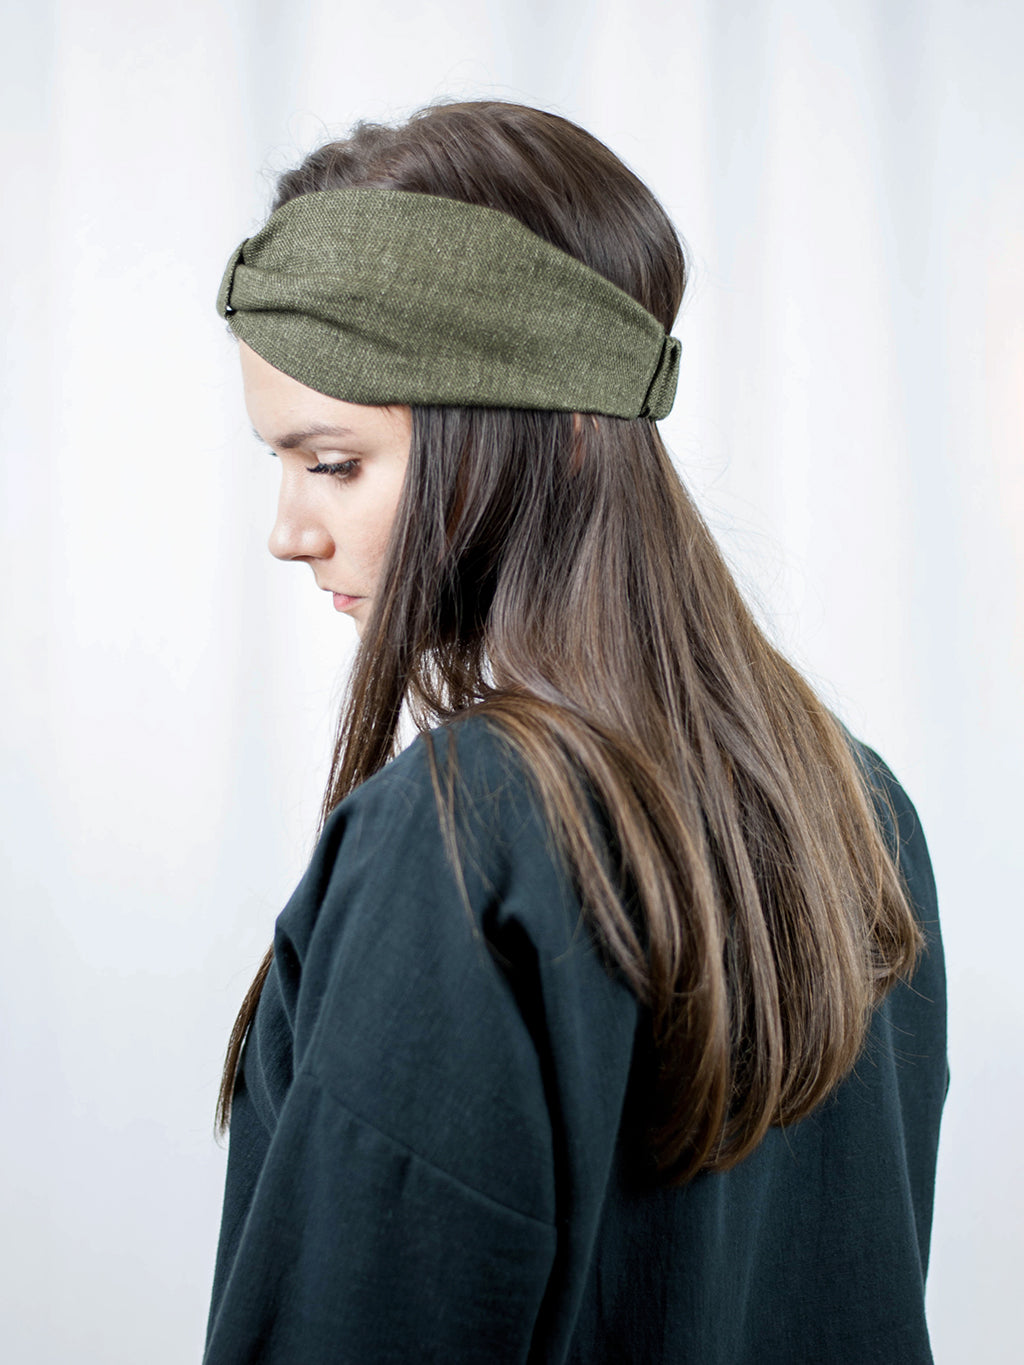 Headband made from linen/wool fabric. Handmade in Slovenia.